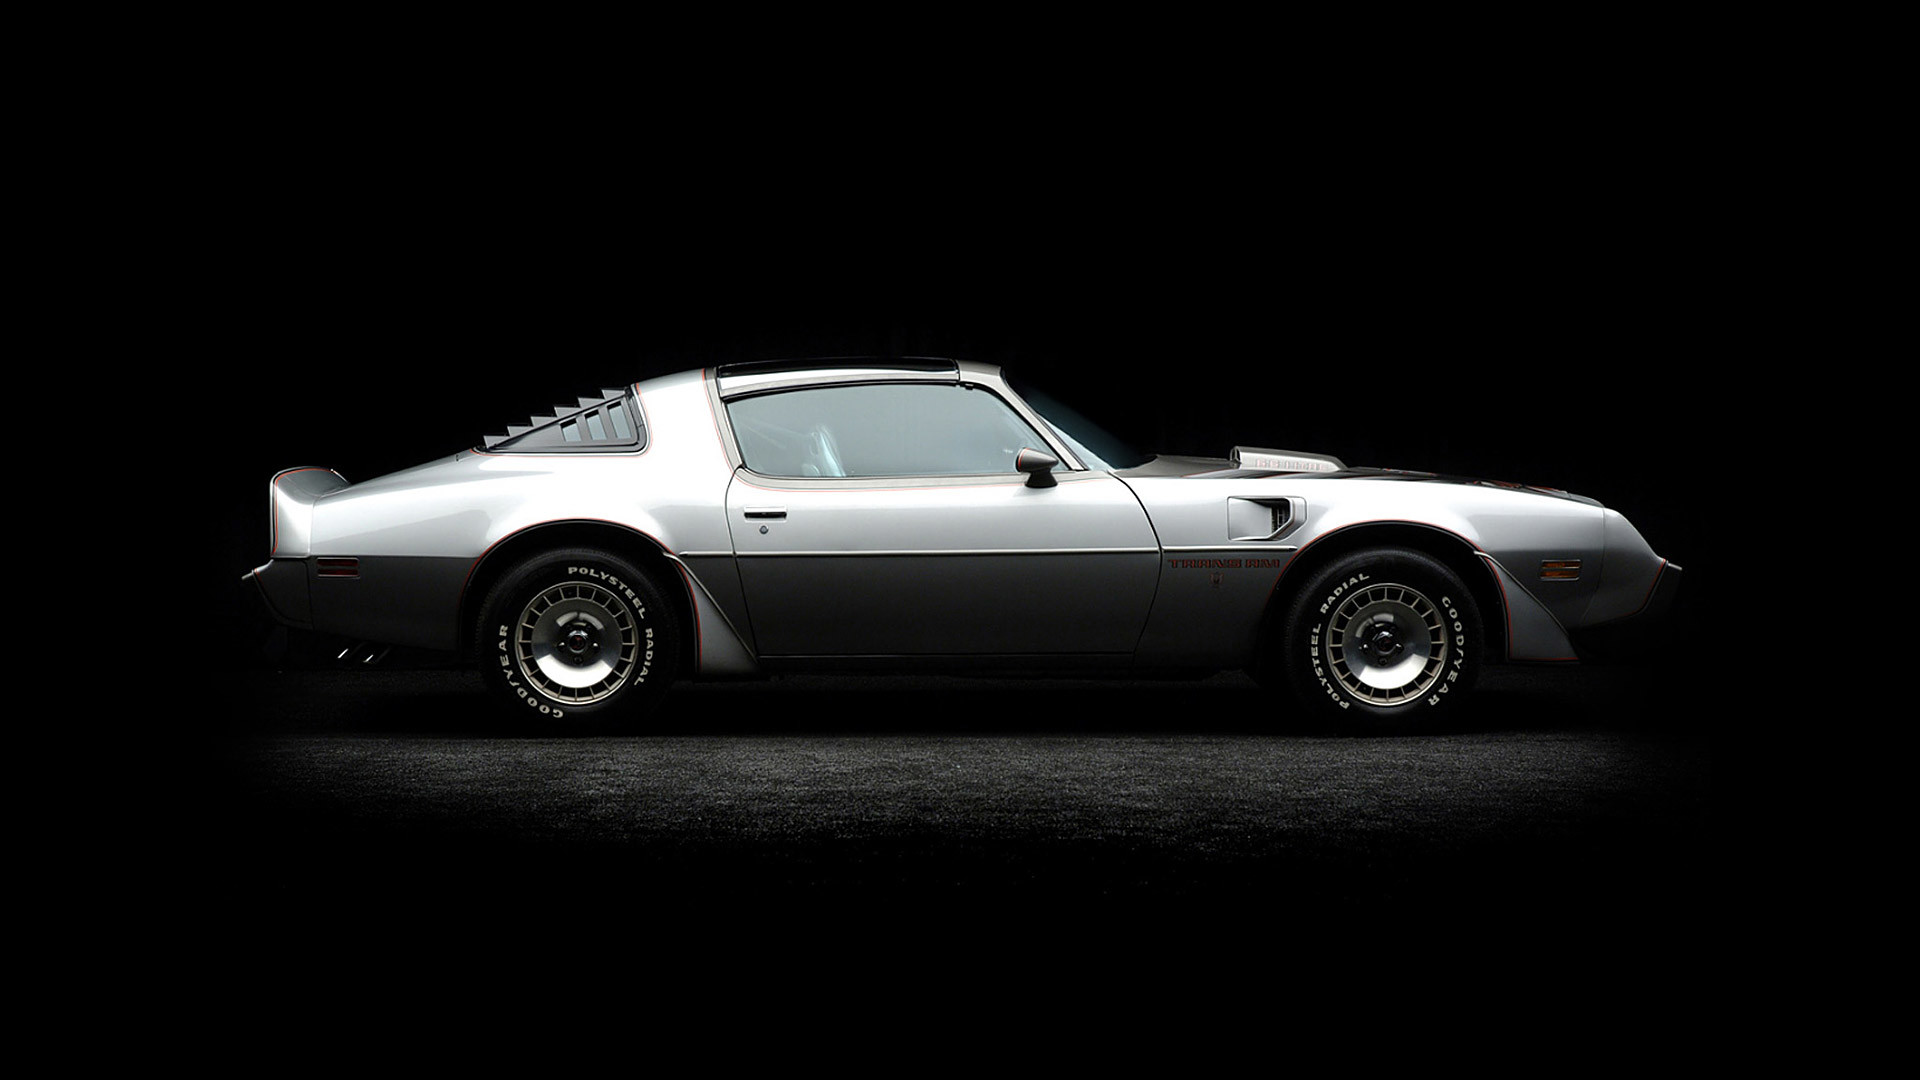 1920x1080 1979 Pontiac Firebird Trans-Am picture.